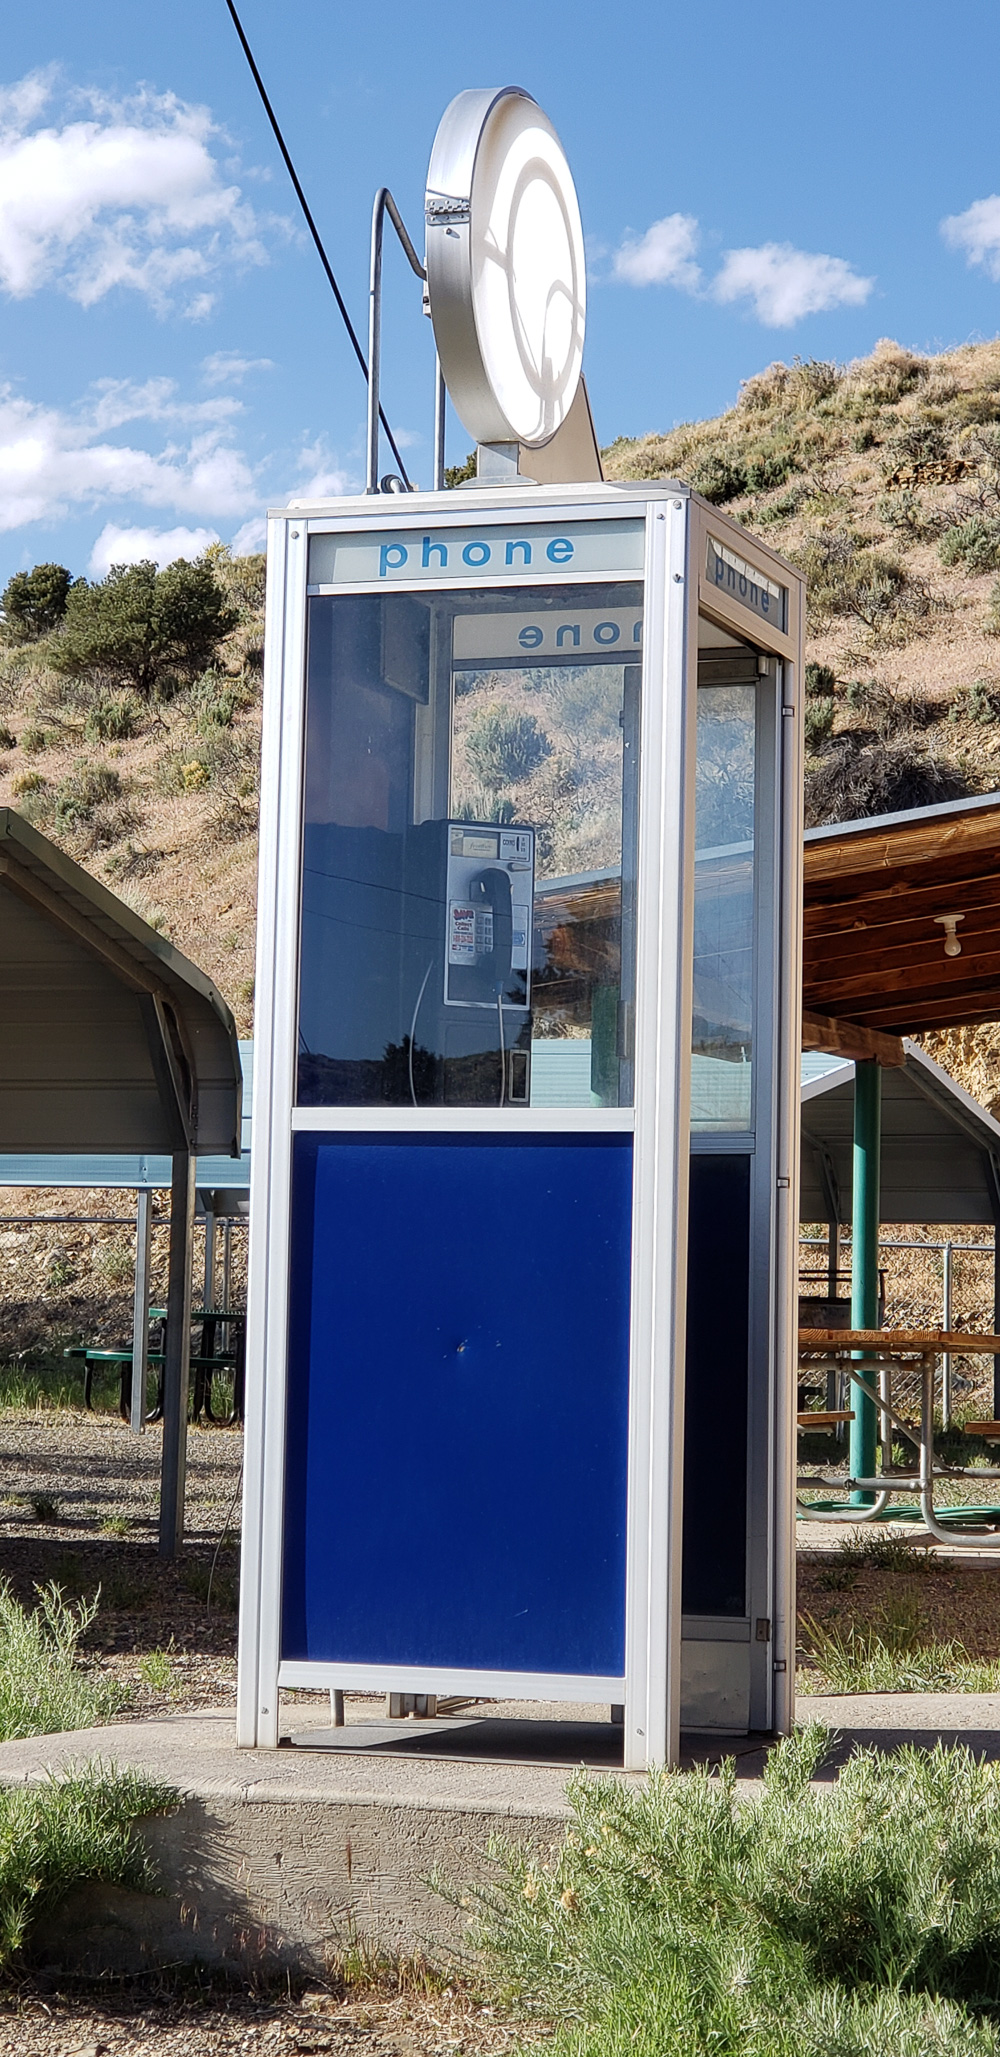 Phone booth in Manhattan Nevada